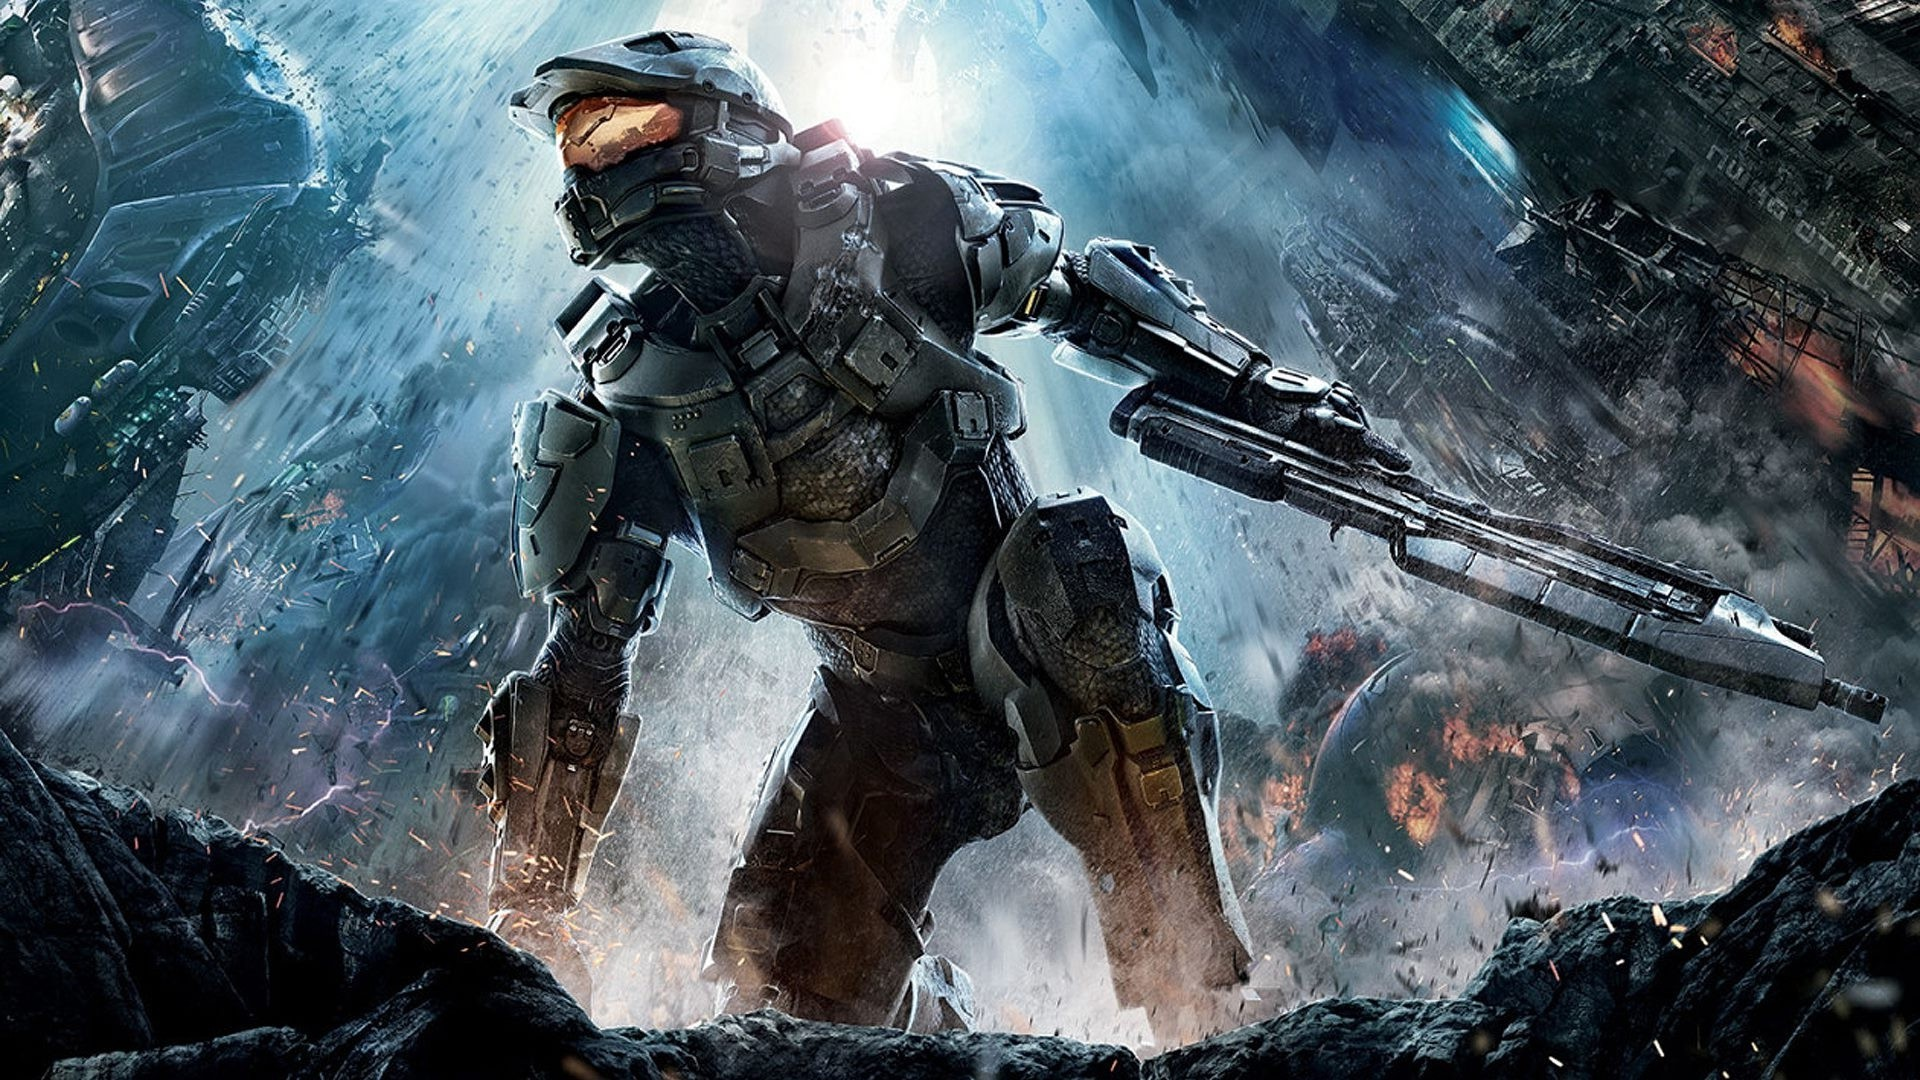 Halo 4 wallpaper 4018 1920x1080